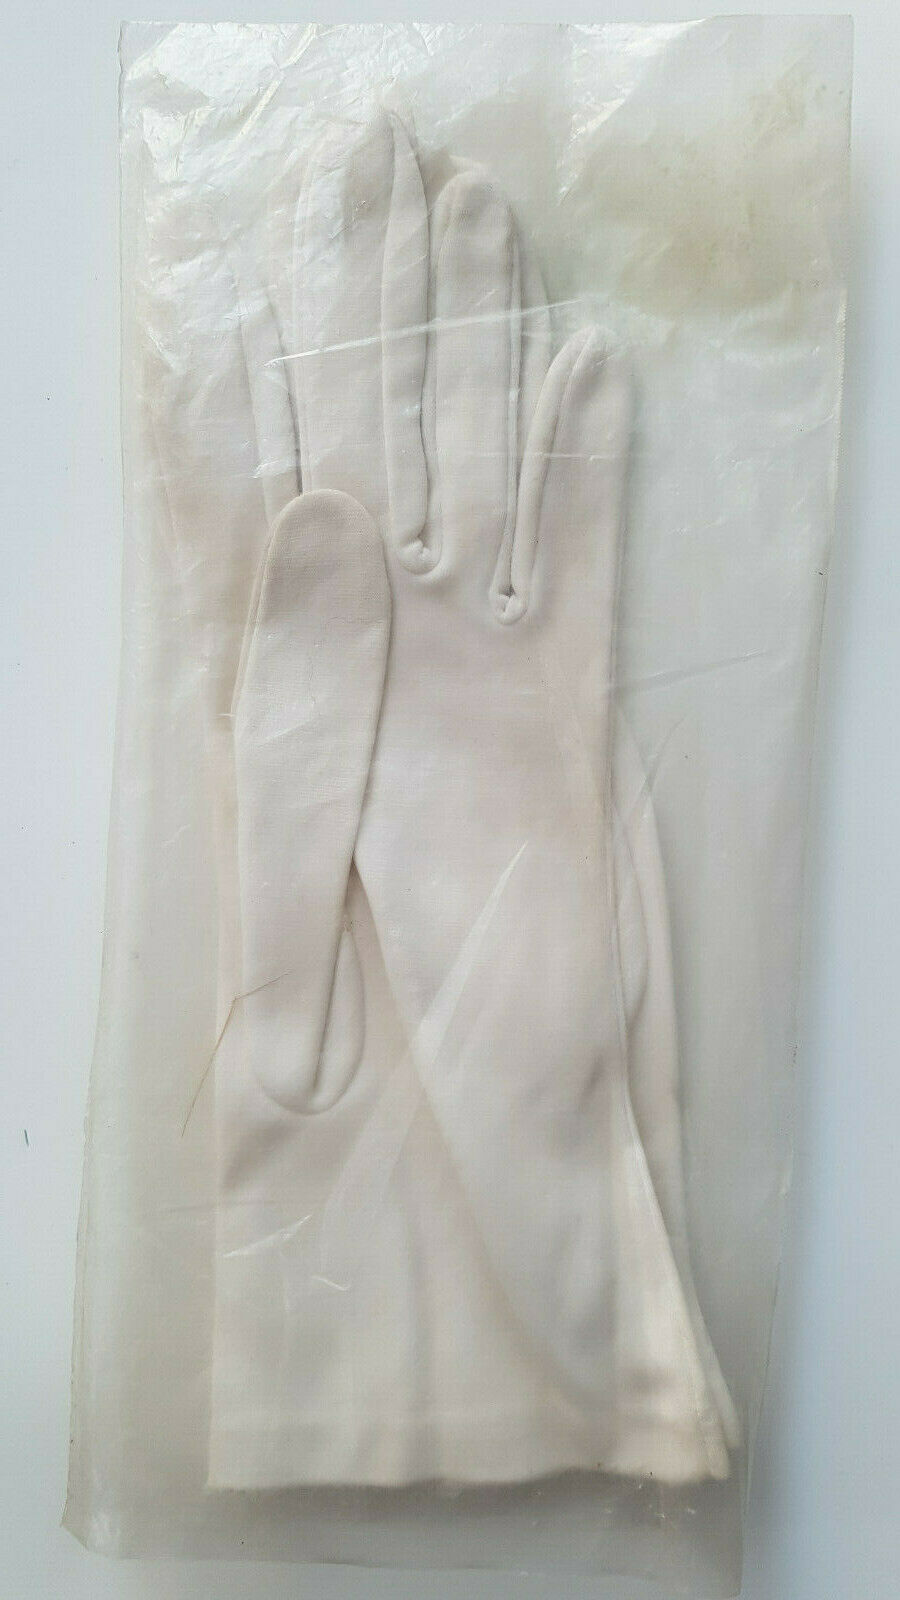 ✔ Gands blanc polyester Taille 7 neufs